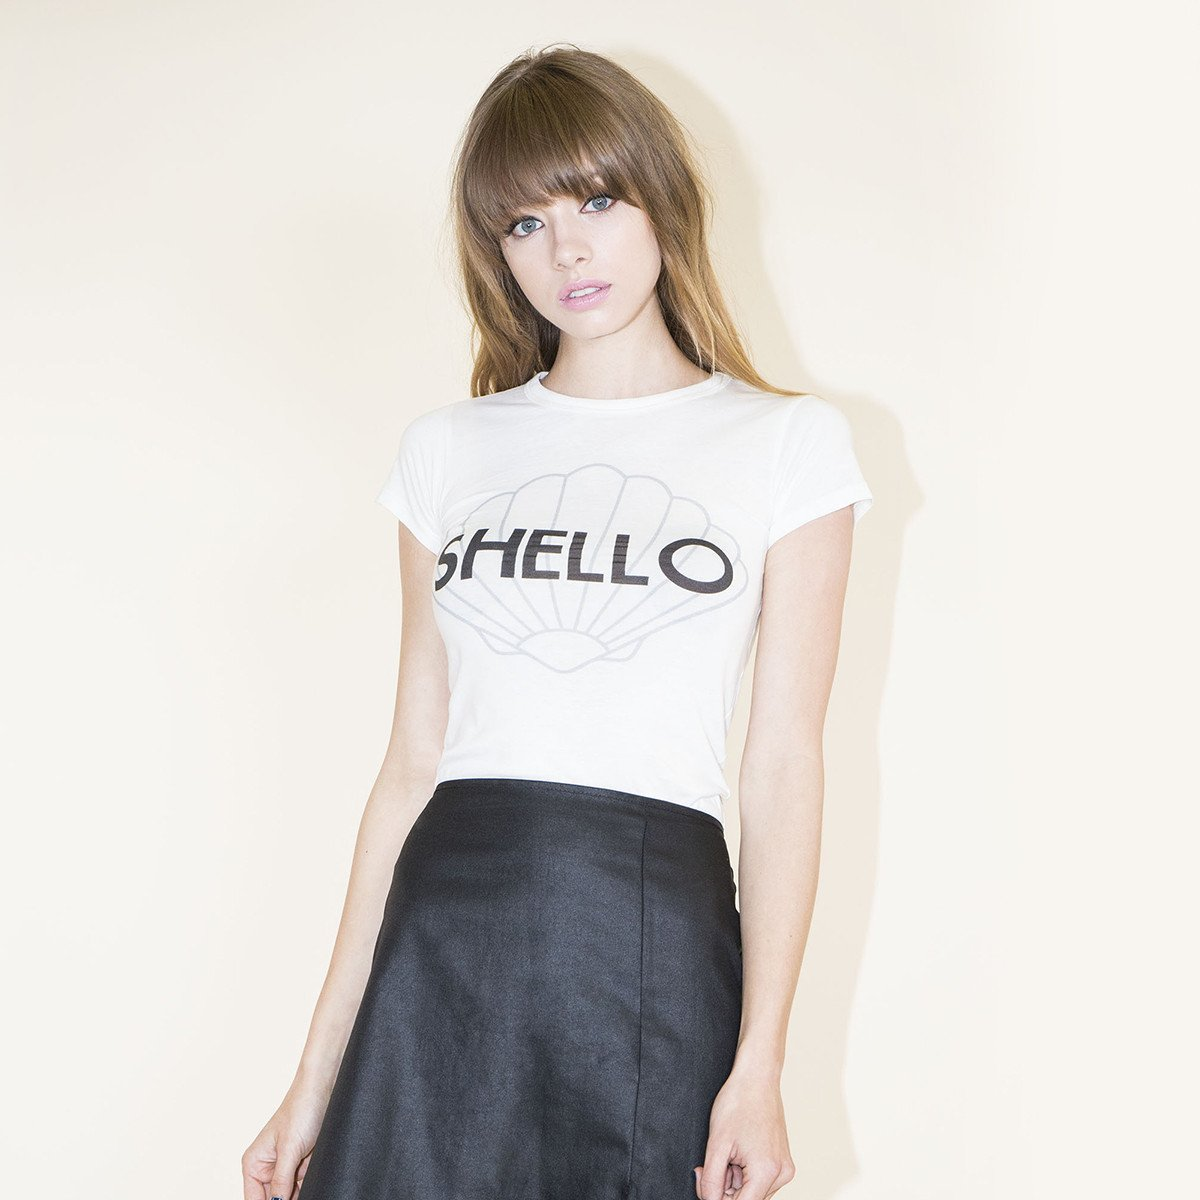 Shello Tee by Valfre